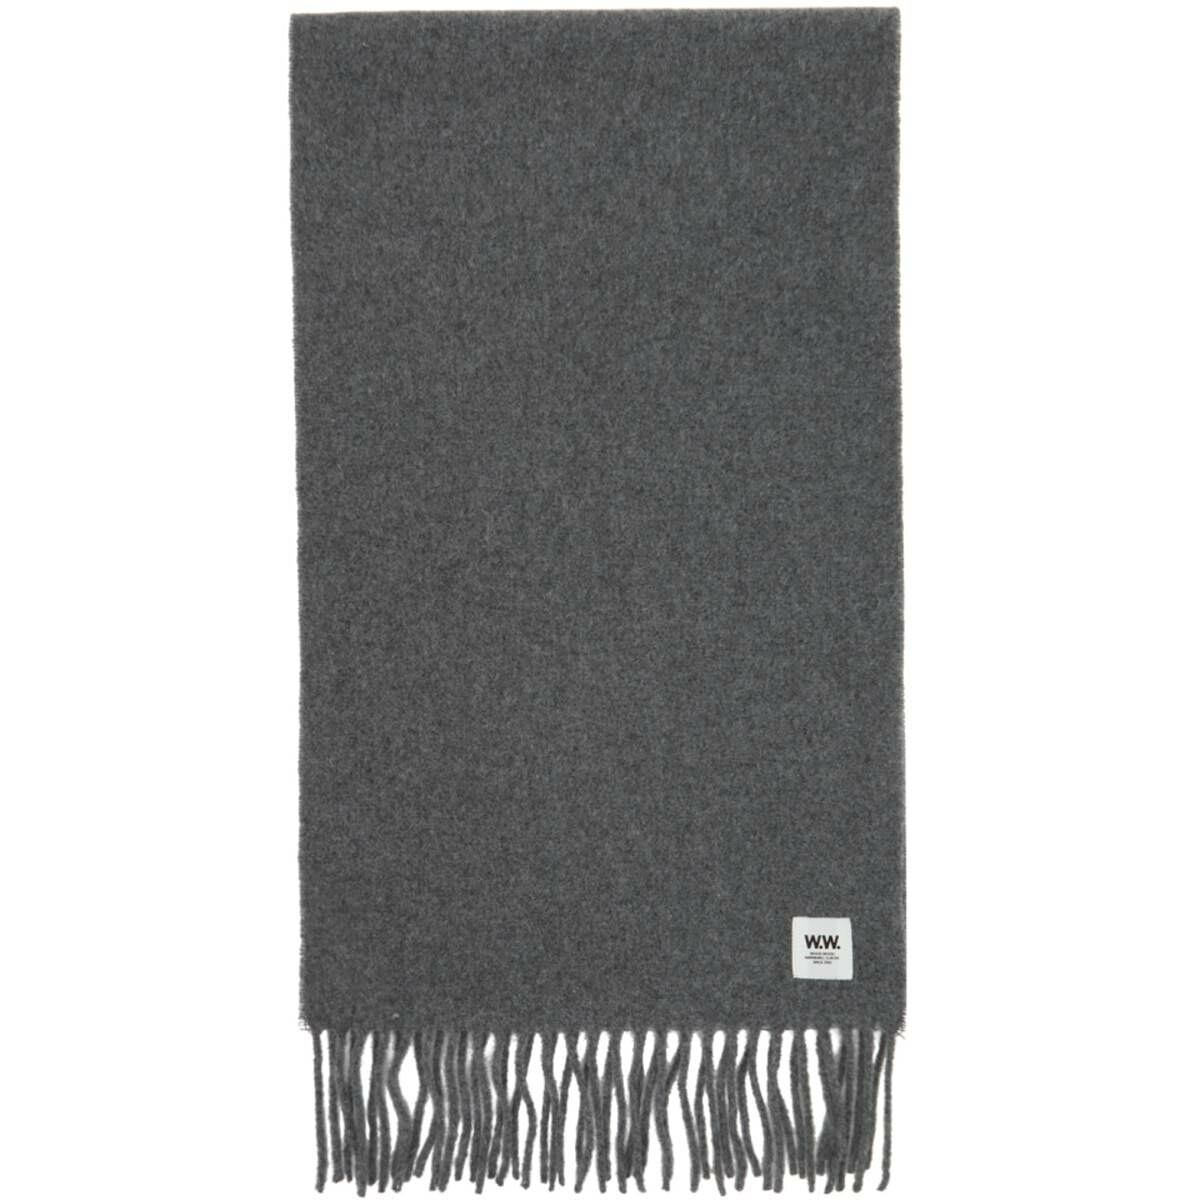 Wood Wood Grey Wool Karlo Scarf Ssense USA MEN Men ACCESSORIES Mens SCARFS